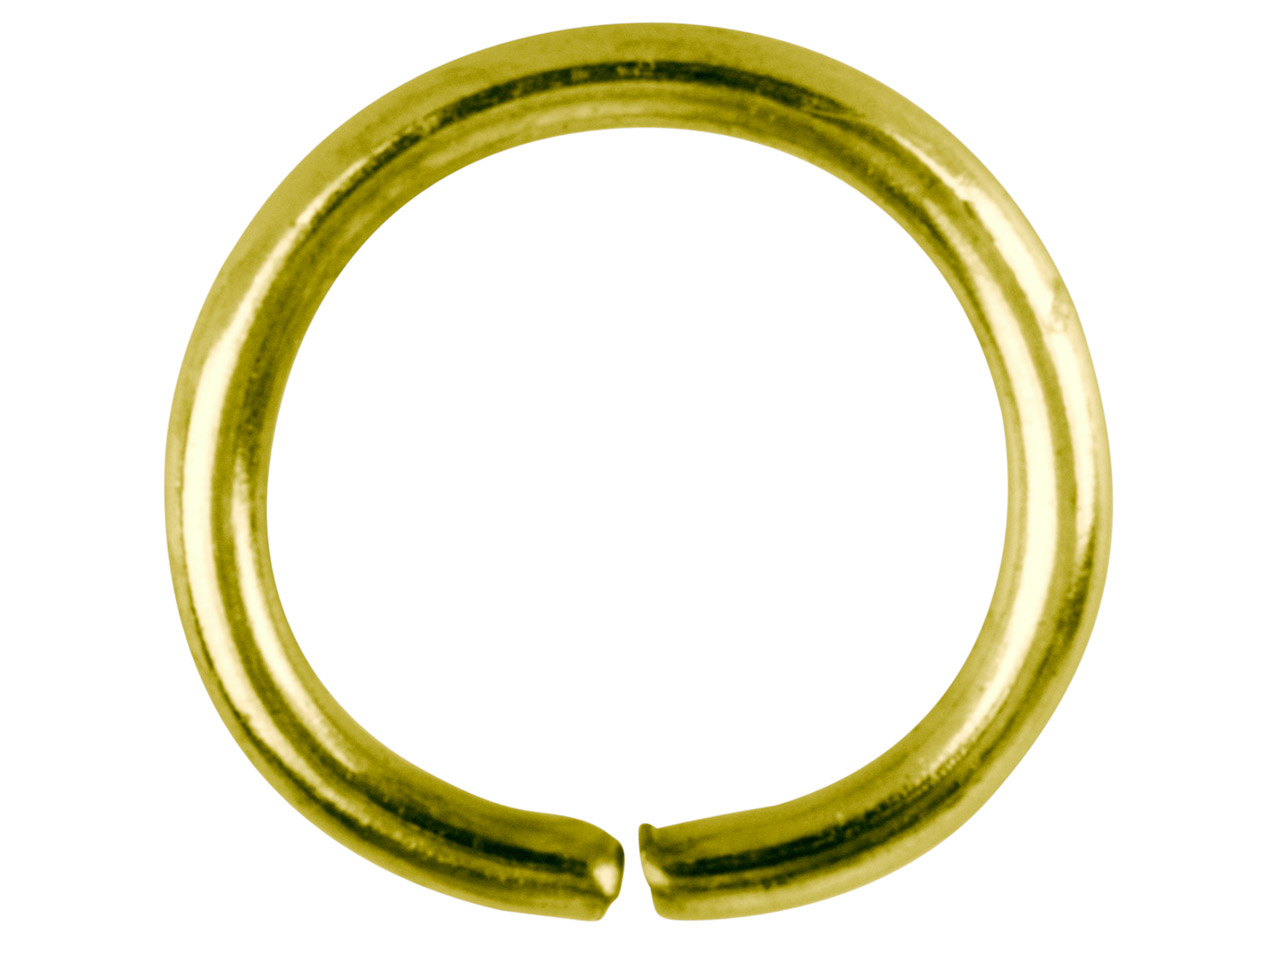 Gold Plated Jump Ring Round 12.5mm Pack of 100,